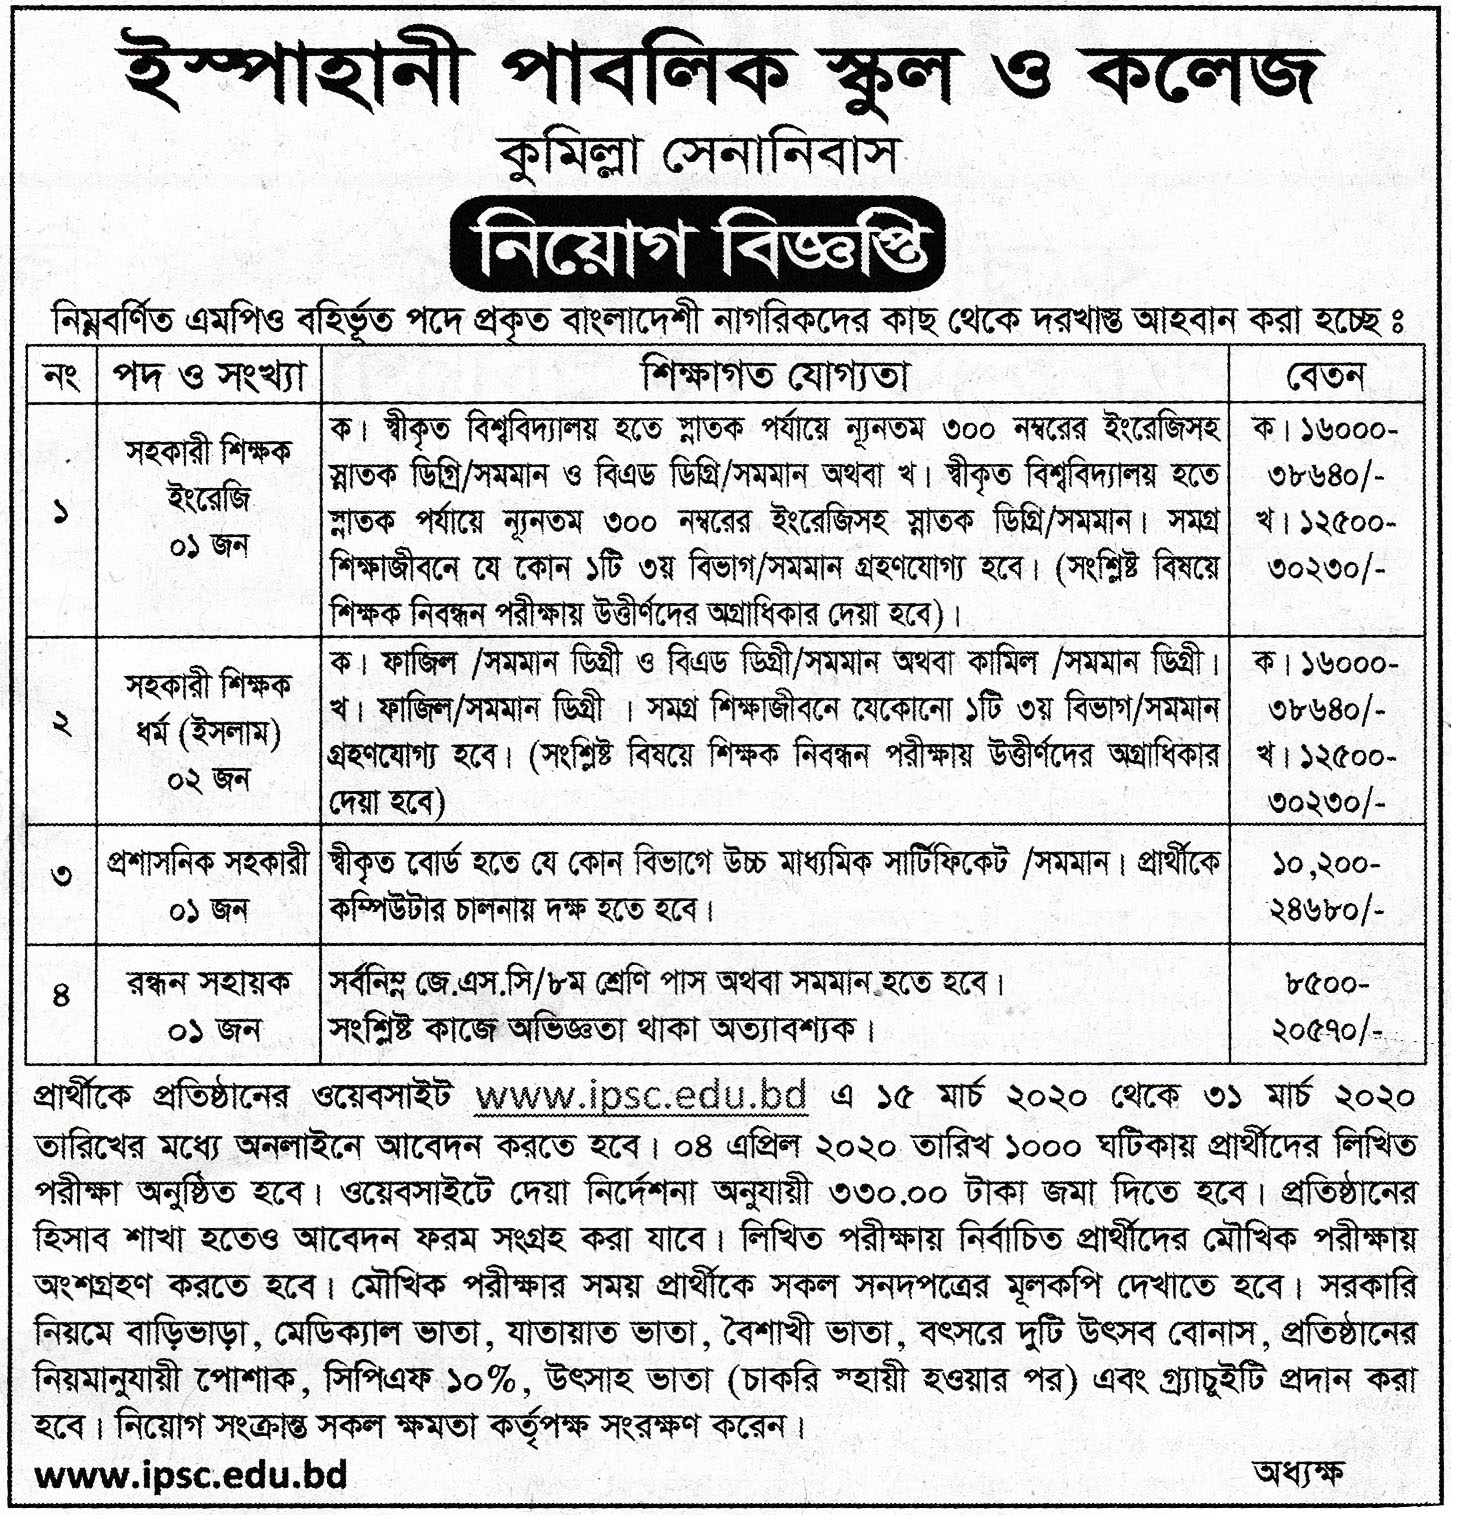 Ispahani Public School and College Job Circular 2020